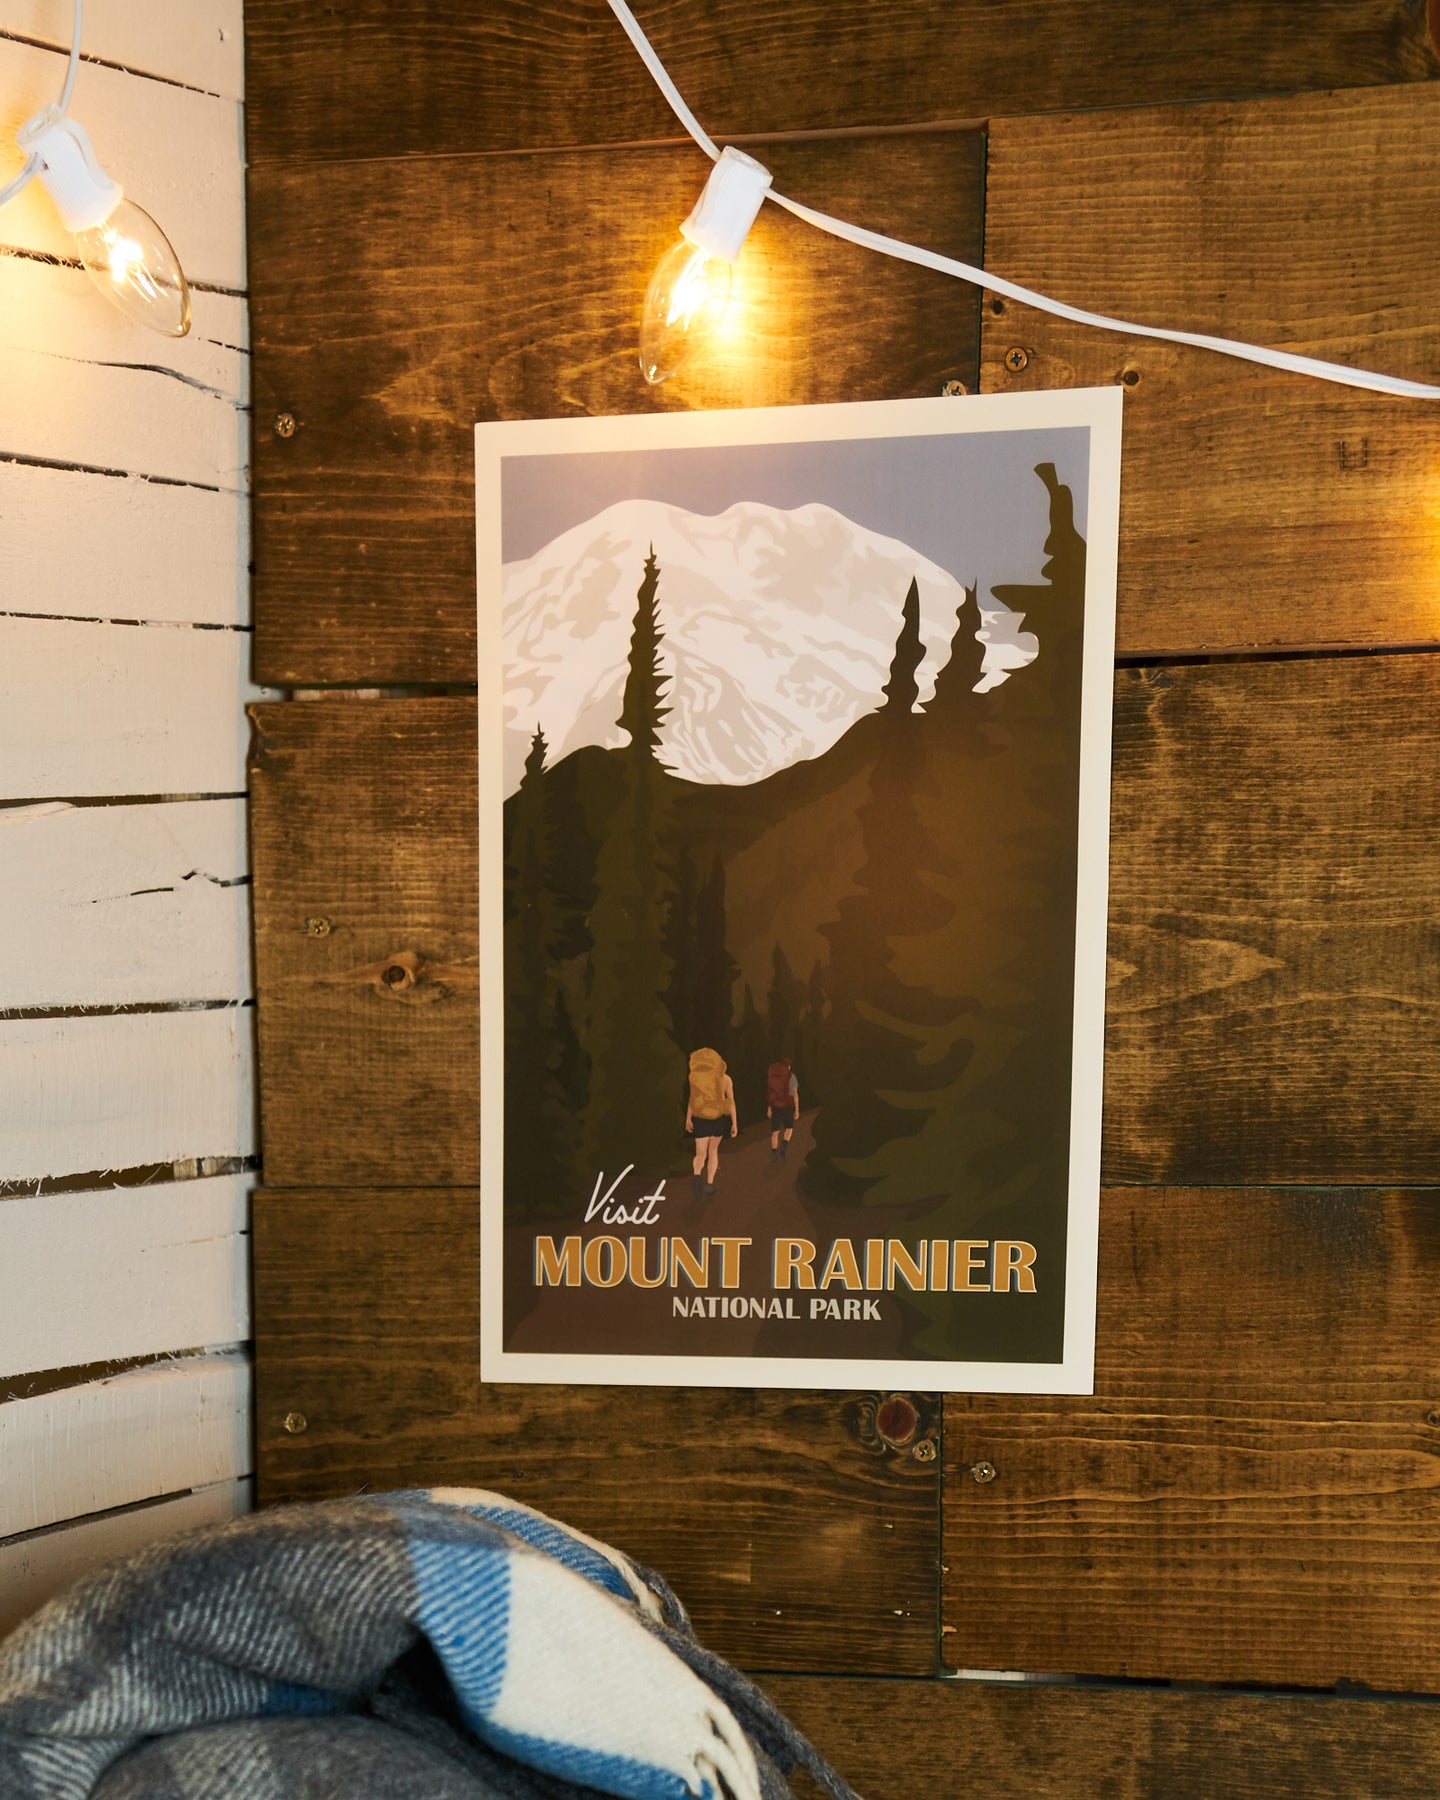 Visit Mount Rainier National Park Poster AXSPP038